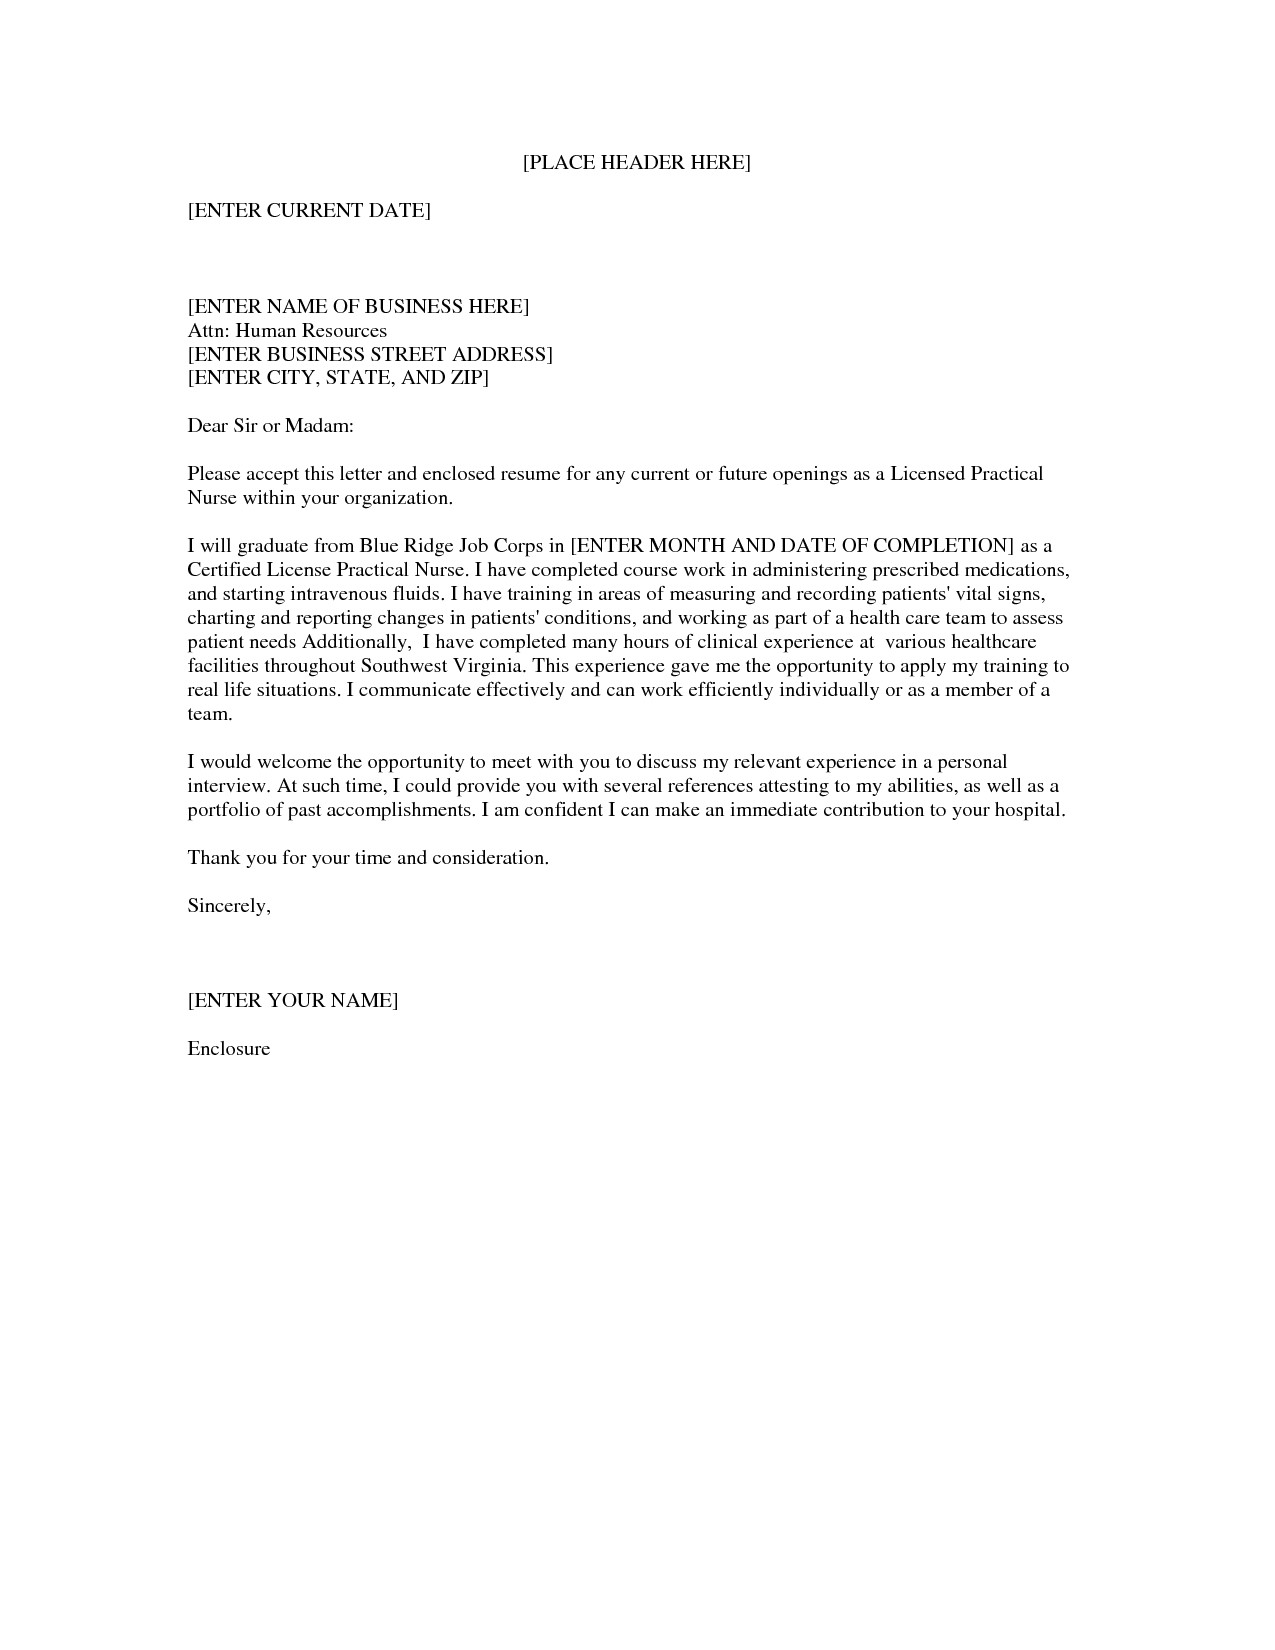 Cover Letter for Lpn with No Experience Lpn Nursing Cover Letter Sample Nursing School